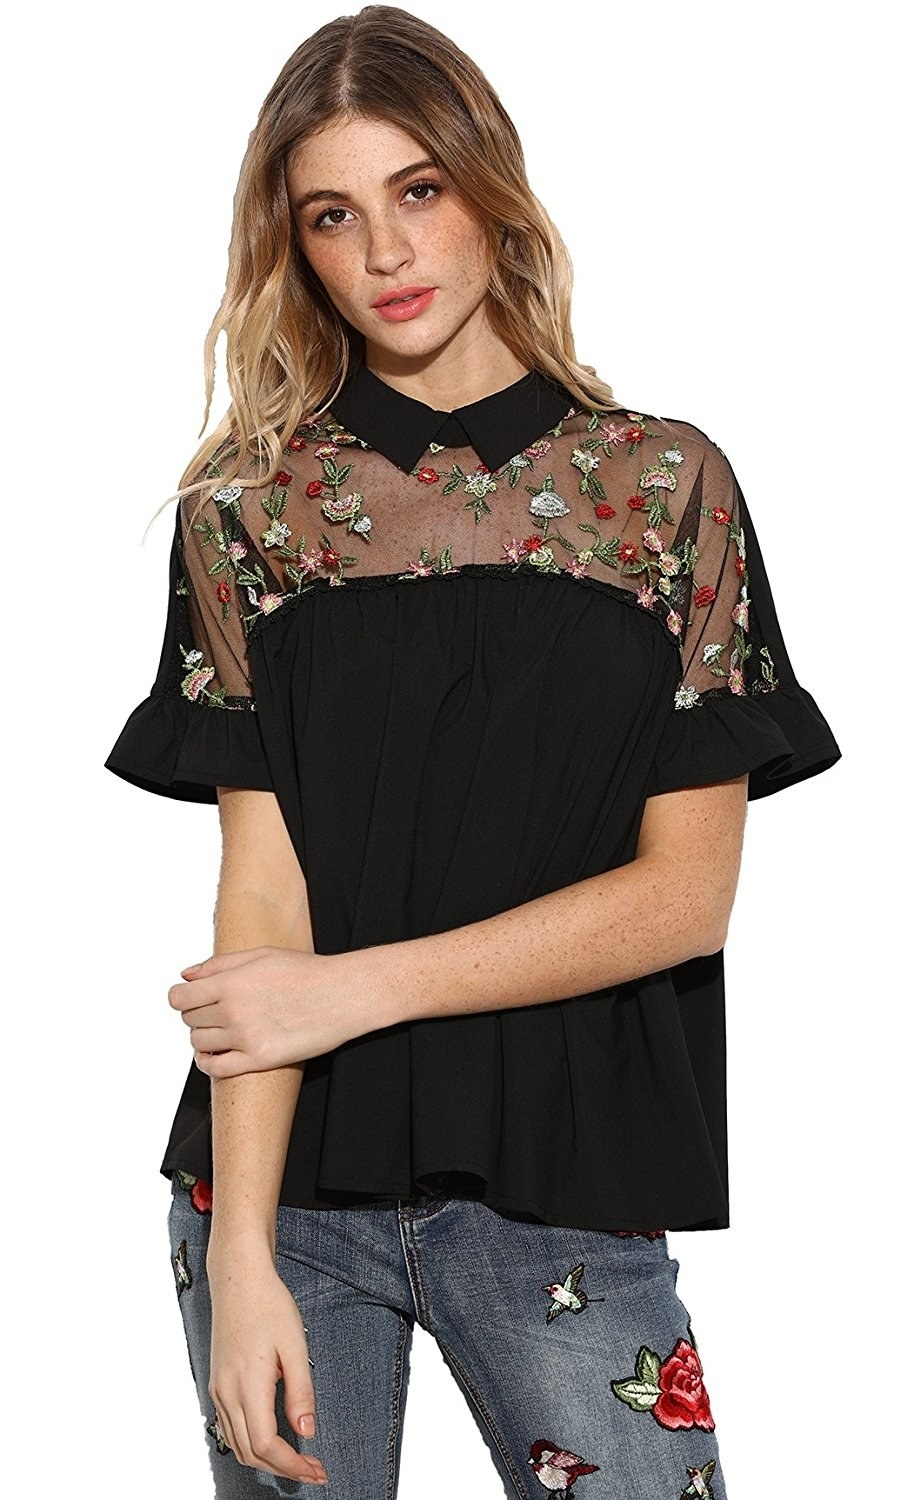 d96abf6080 38. A floral embroidered semi-sheer collared blouse for a statement no one  will be able to look past.